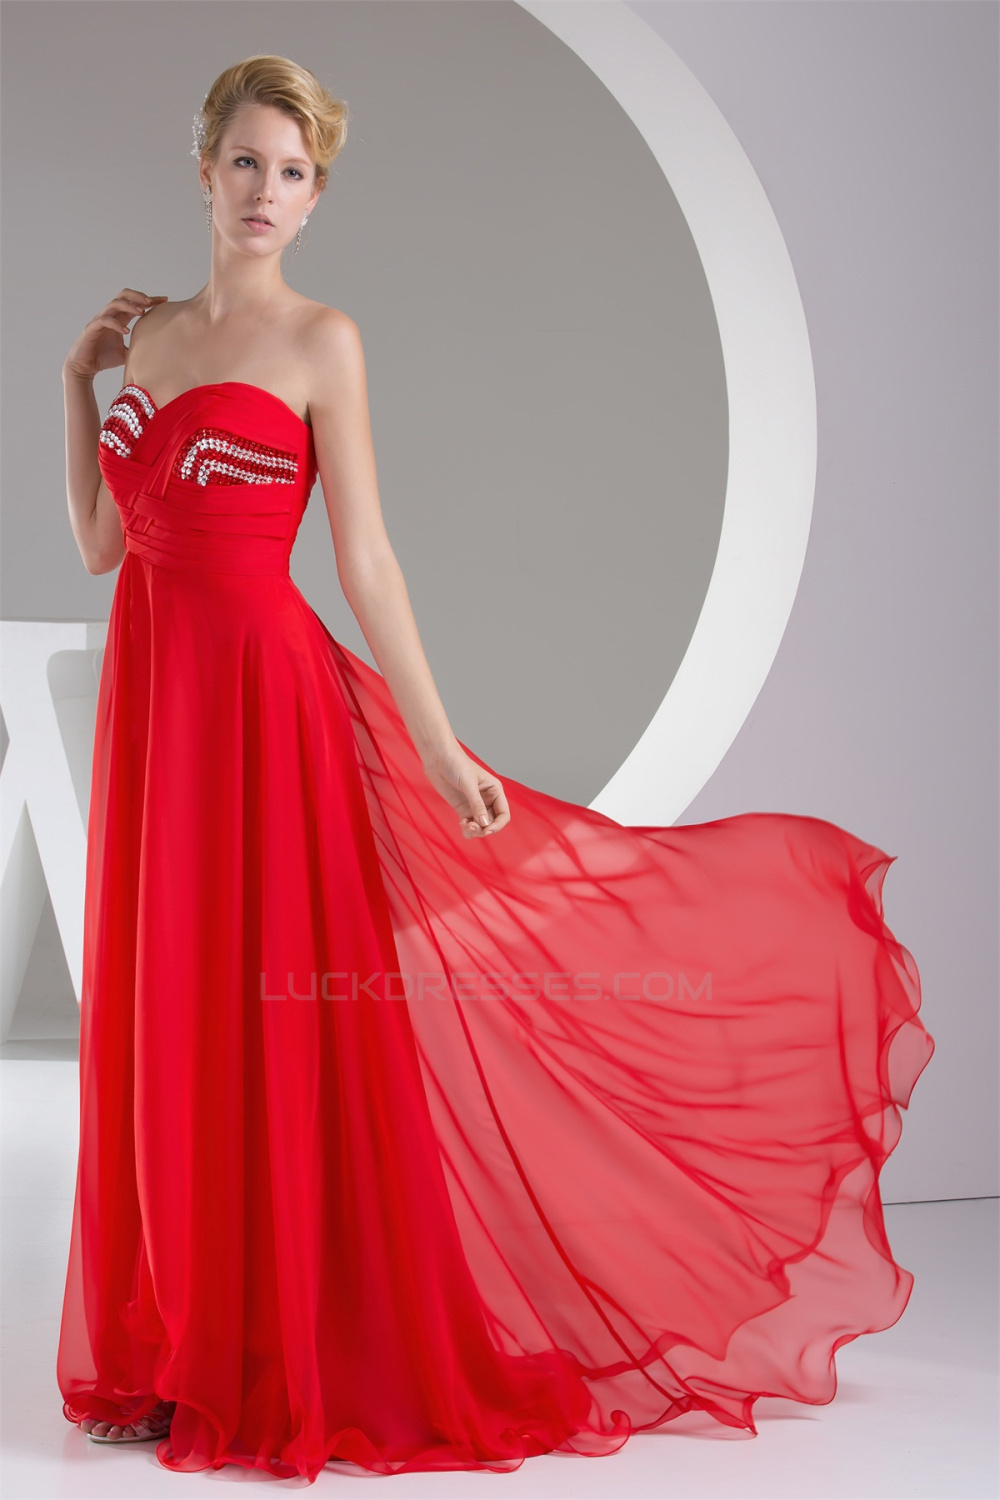 Line sweetheart beaded long red chiffon bridesmaid dresses 02010220 a line sweetheart beaded long red chiffon bridesmaid dresses 02010220 ombrellifo Image collections